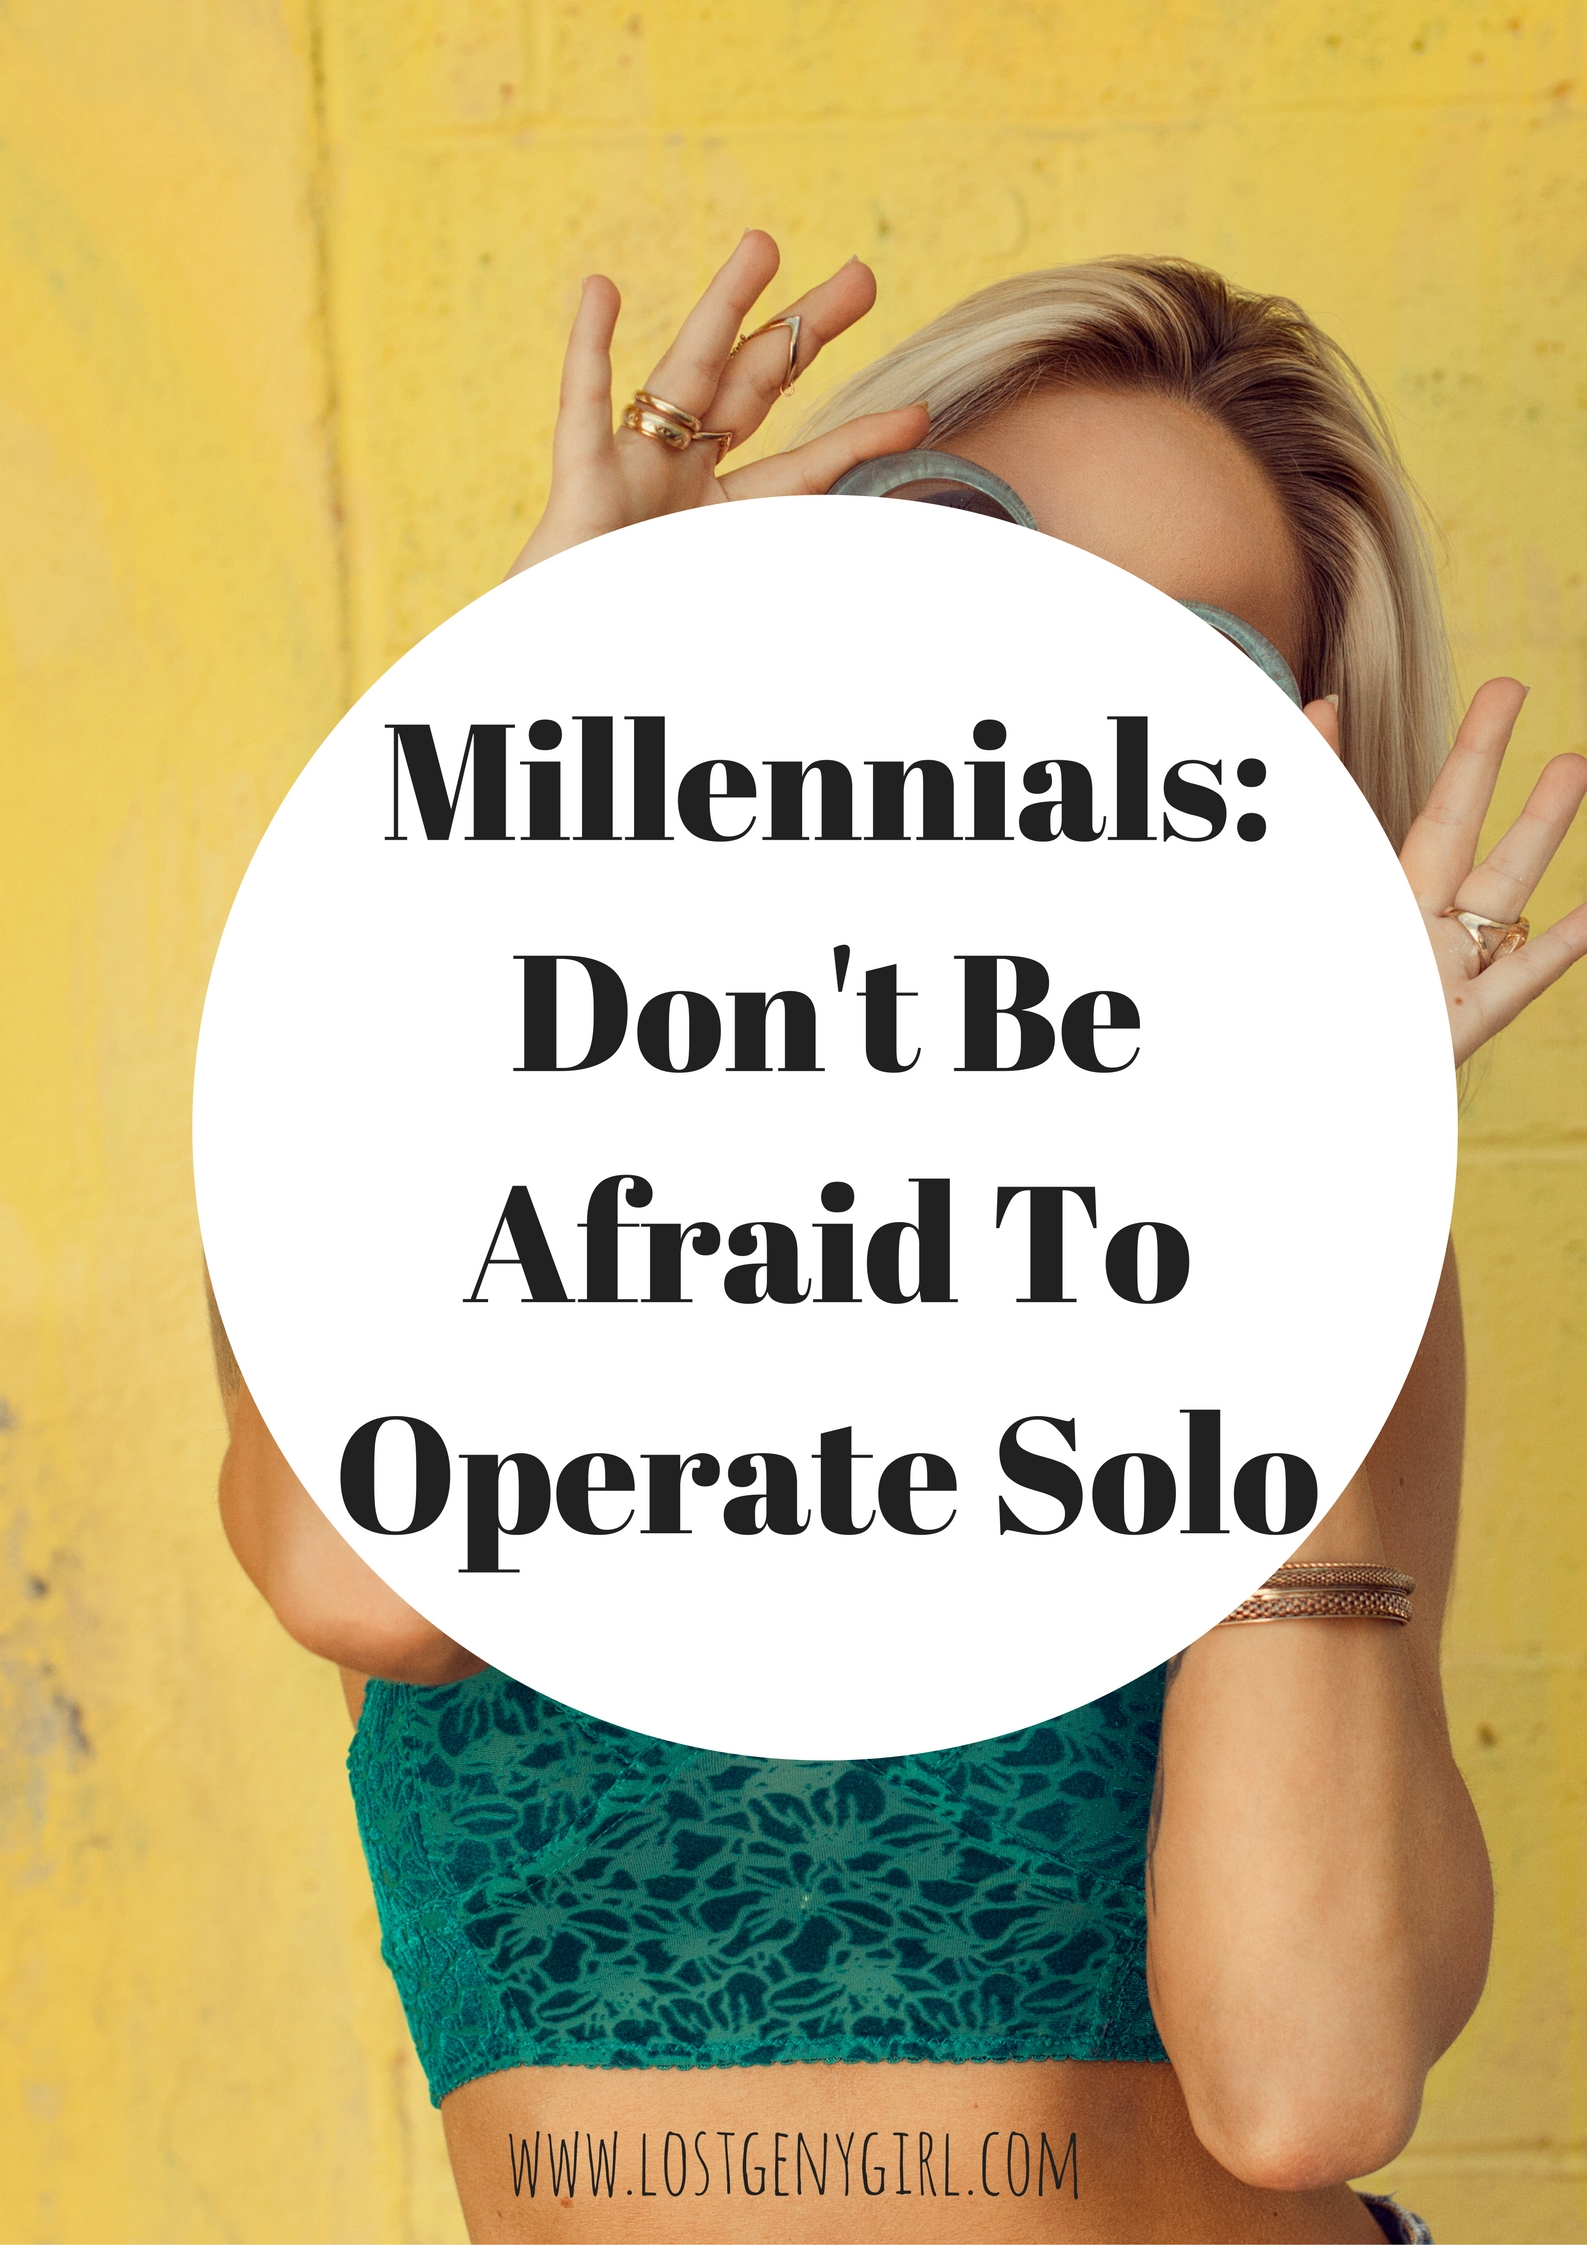 Millennials: Don't Be Afraid to Operate Solo